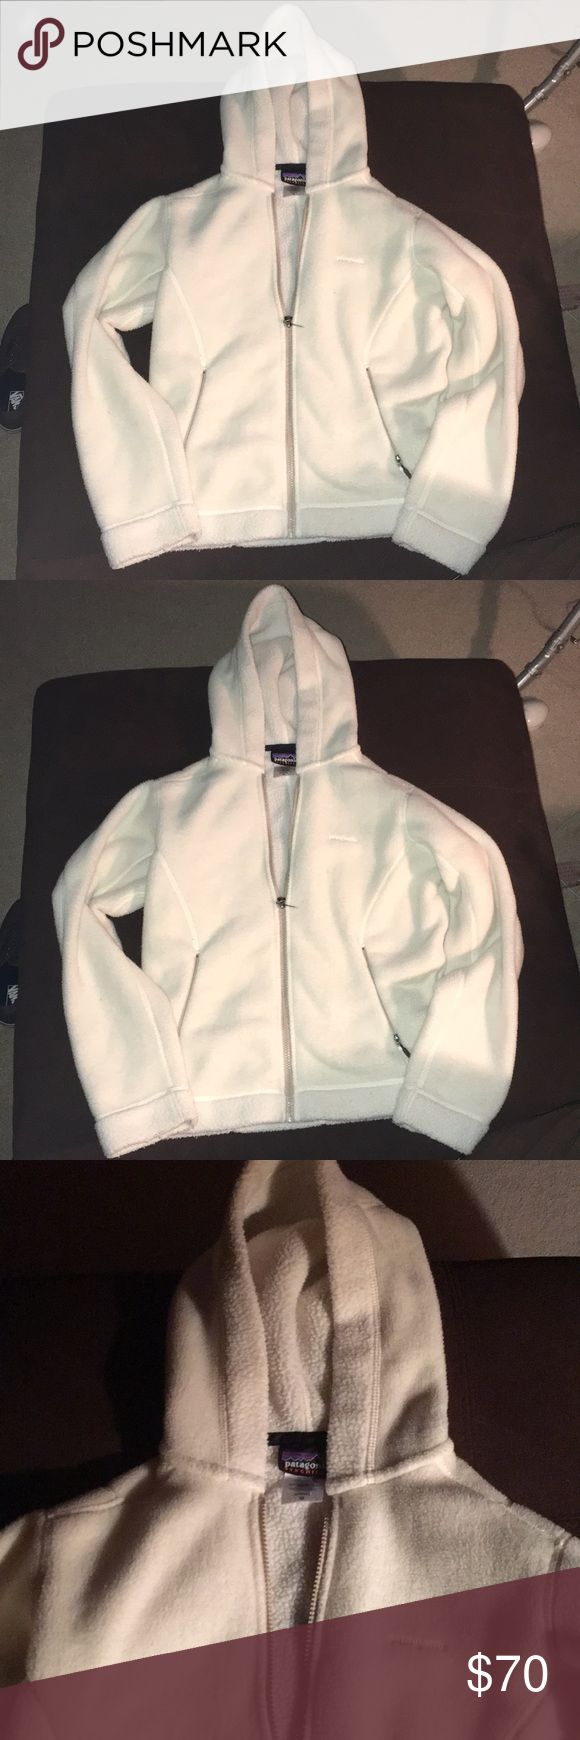 Patagonia! Cream zip up fleece hoodie! Size medium Great condition. So warm and soft! Zip pockets. Check out my other listings! Bundle and save:) Patagonia Jackets & Coats